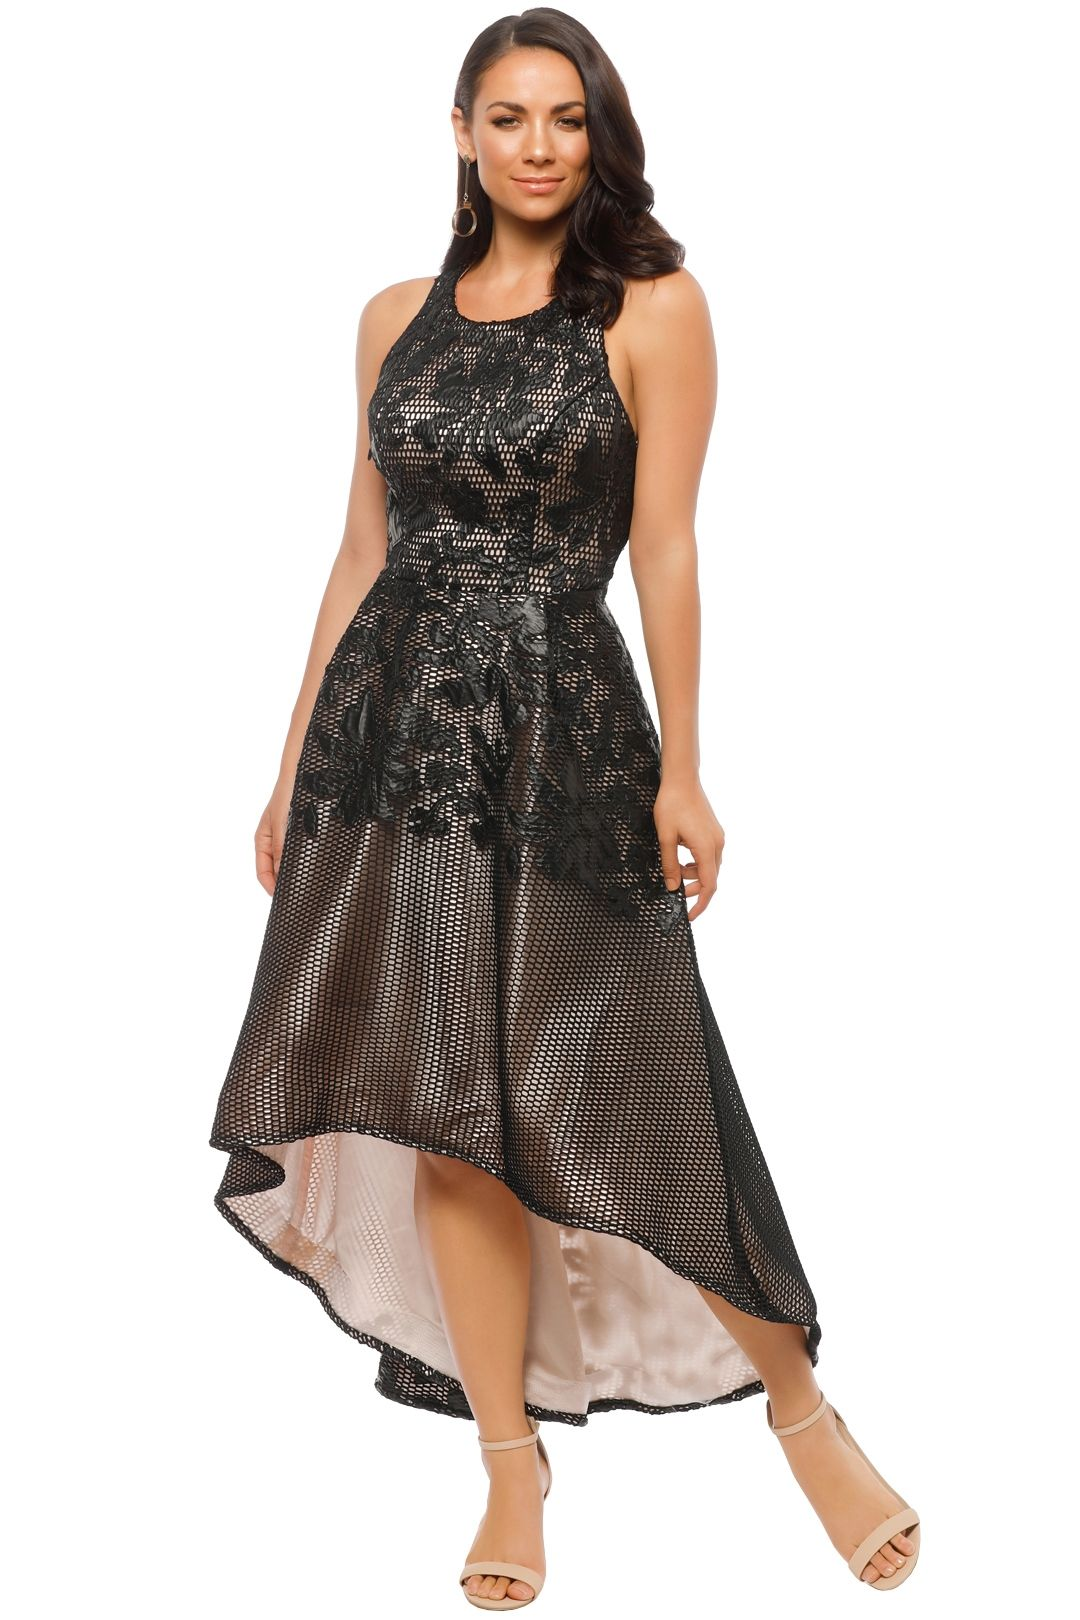 Tinaholy - Floral Lace Dress - Black - Front